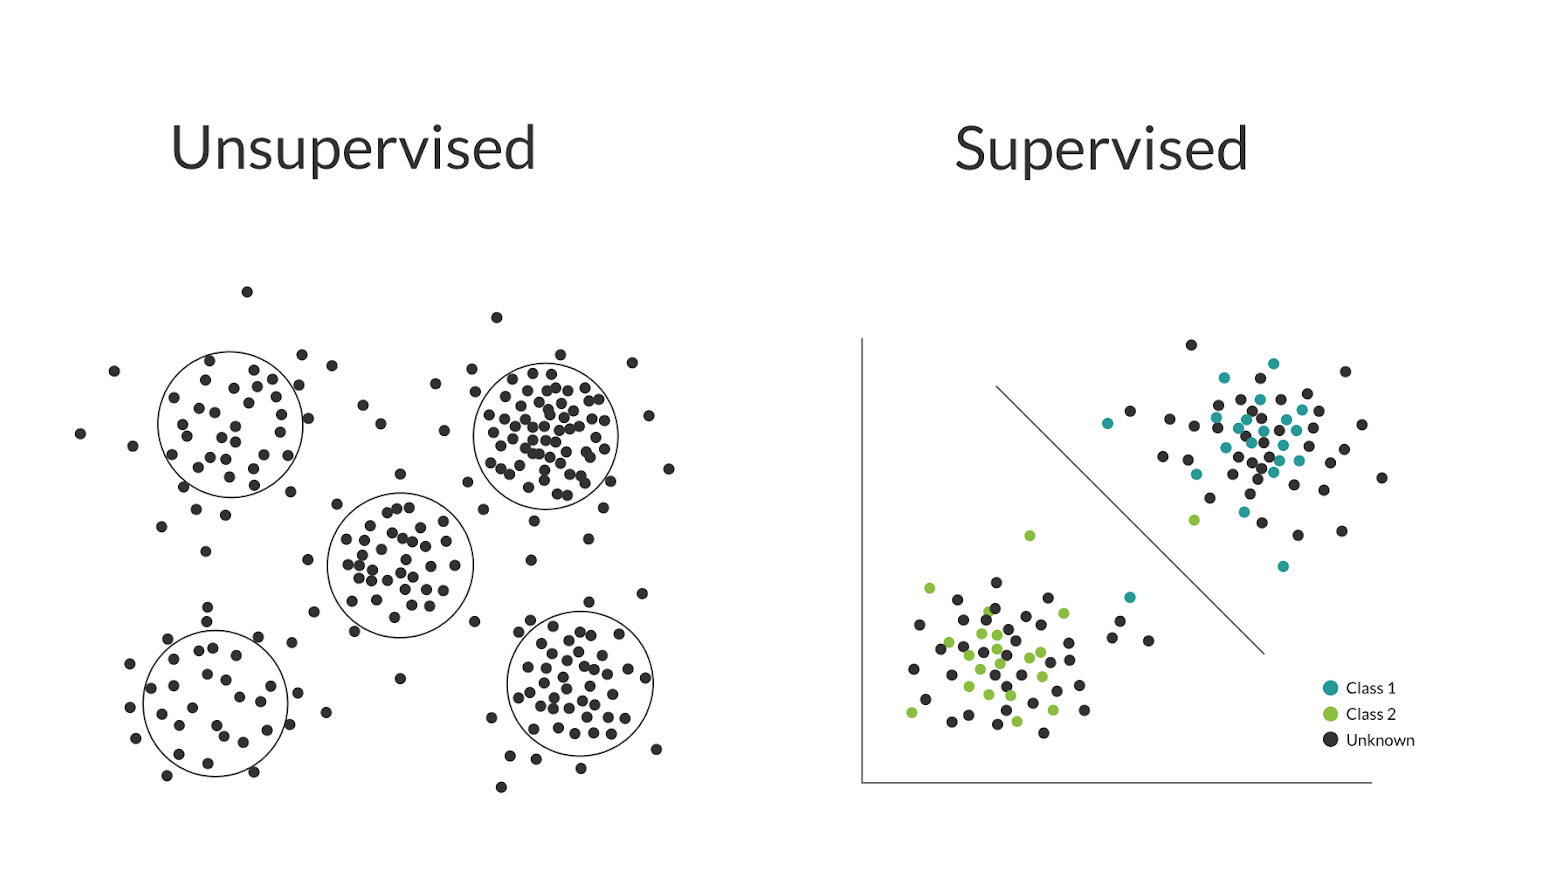 Unsupervised vs. Supervised ML diagram